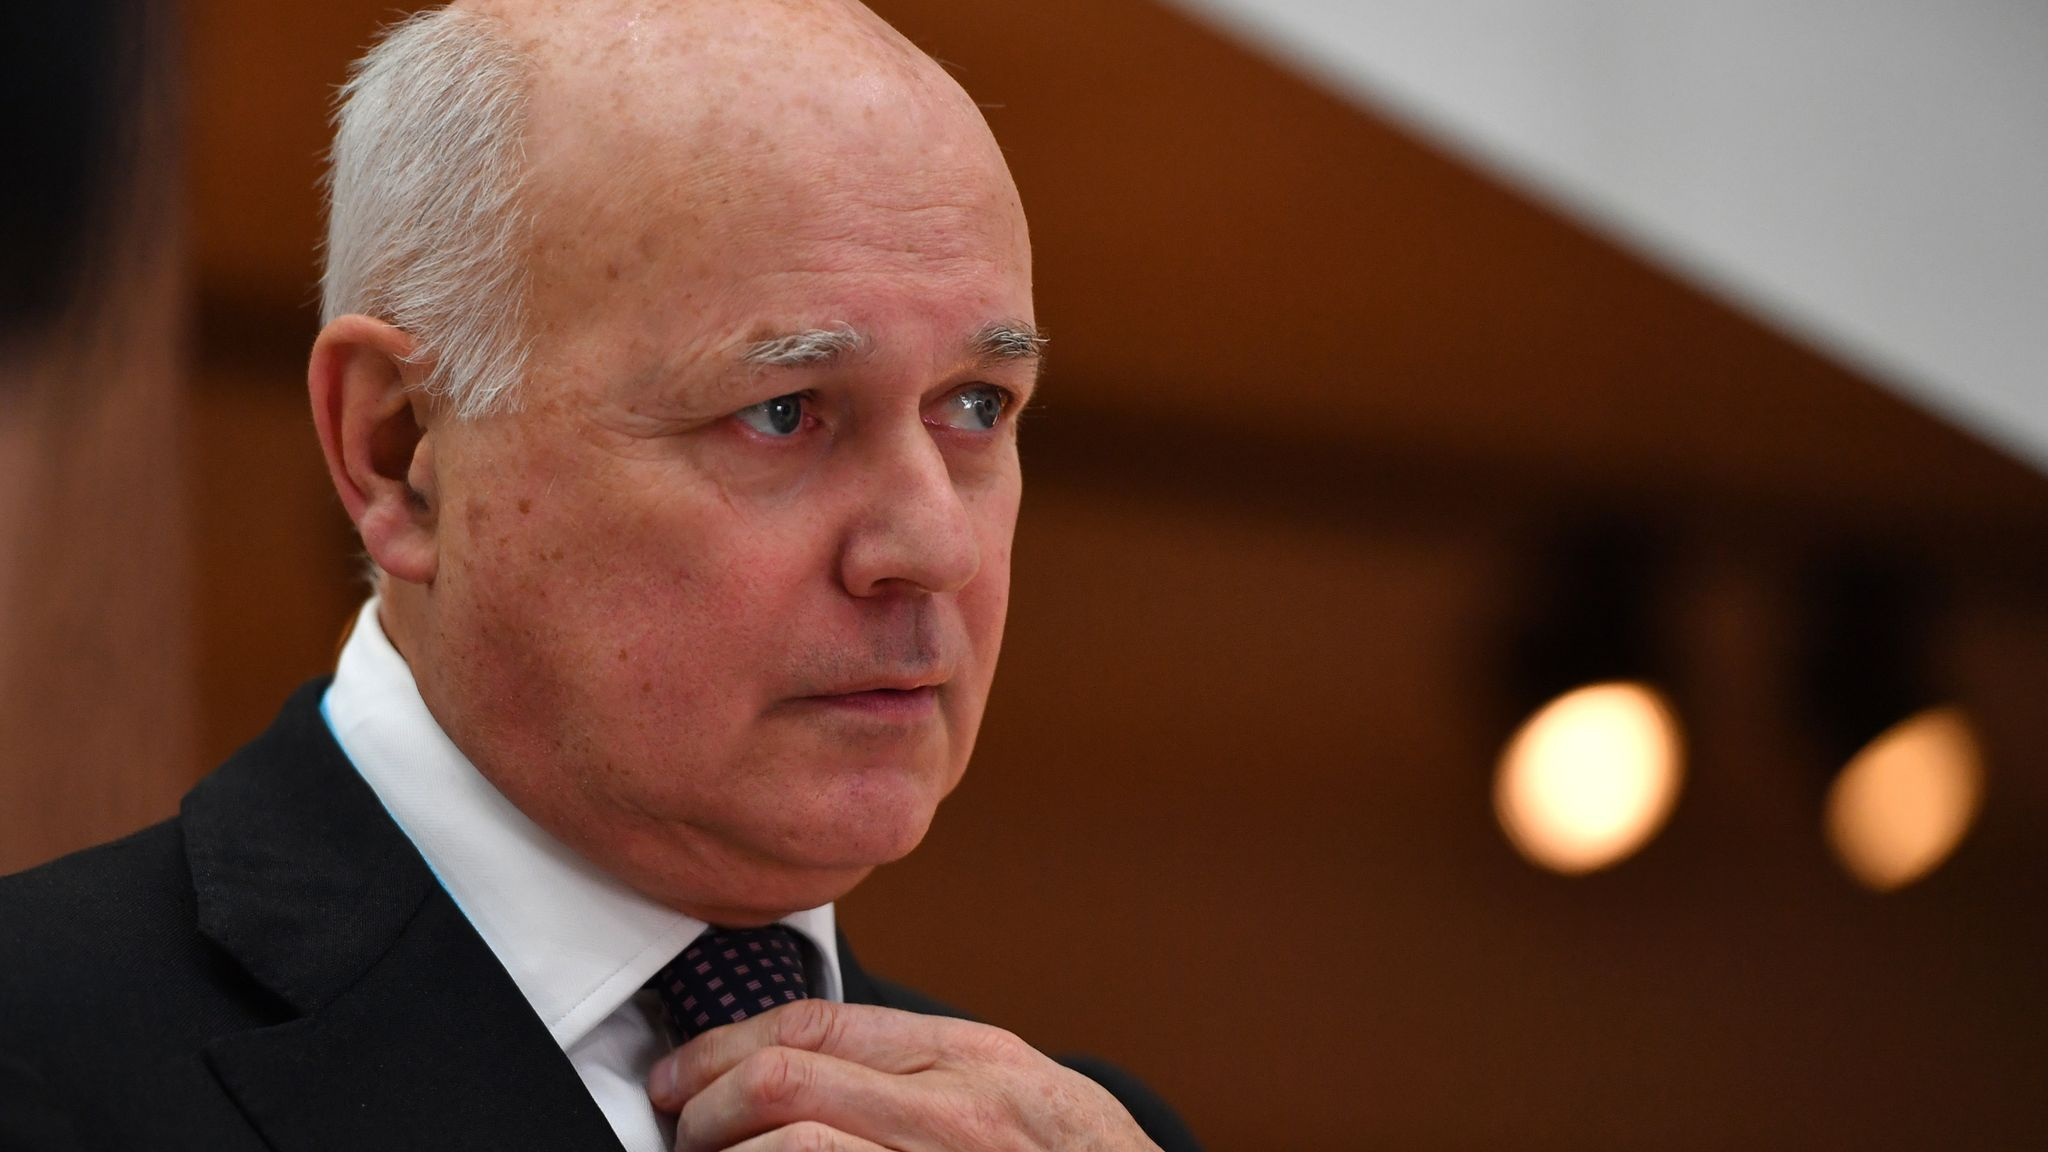 New Year Honours: Thousands sign petition to remove Iain Duncan Smith's knighthood